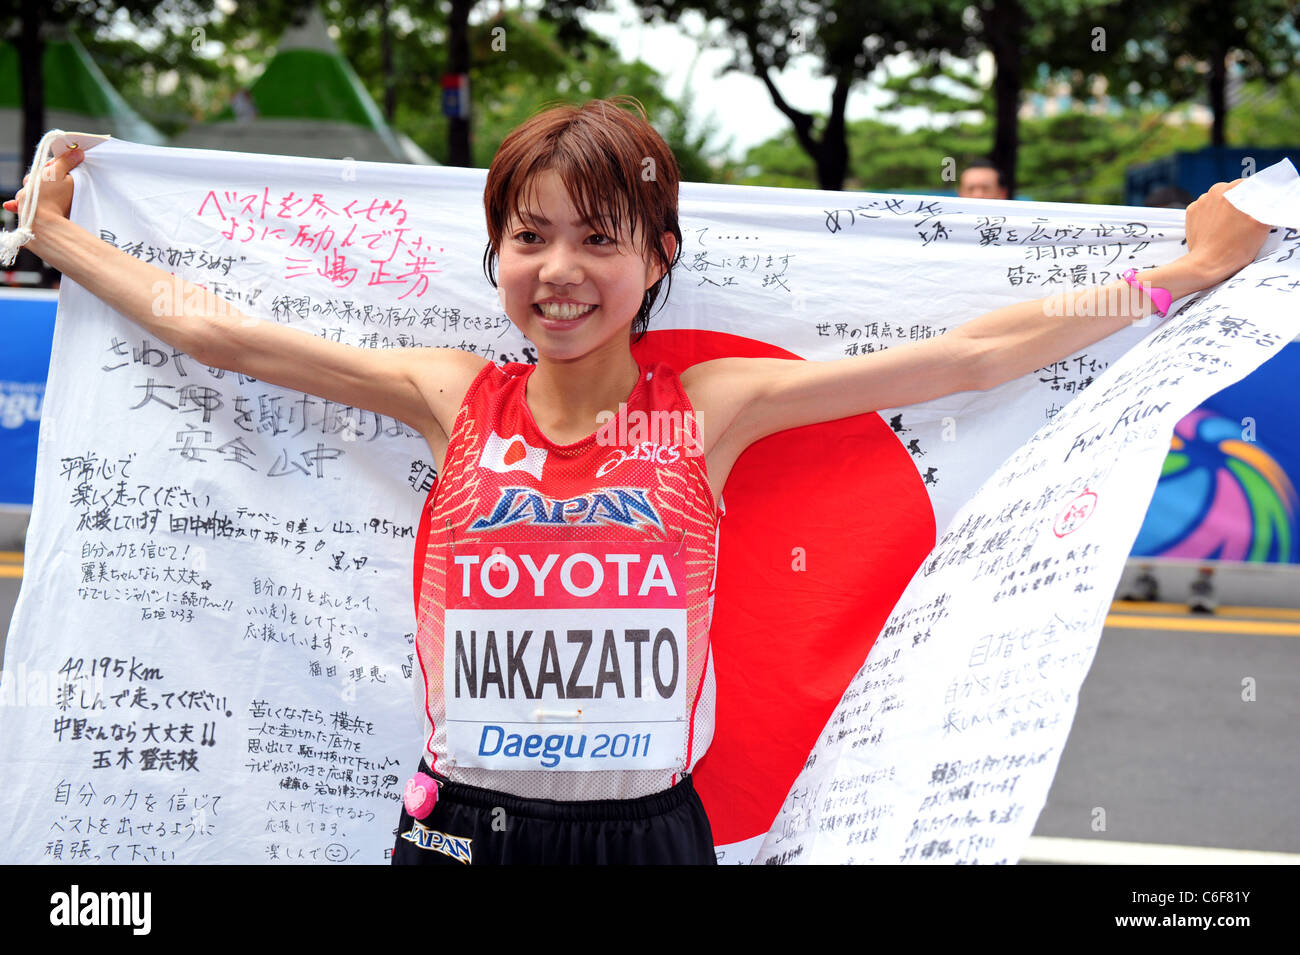 Remi Nakazato (JPN) posing for pictures after running for the 13th IAAF World Championships in Athletics. - Stock Image